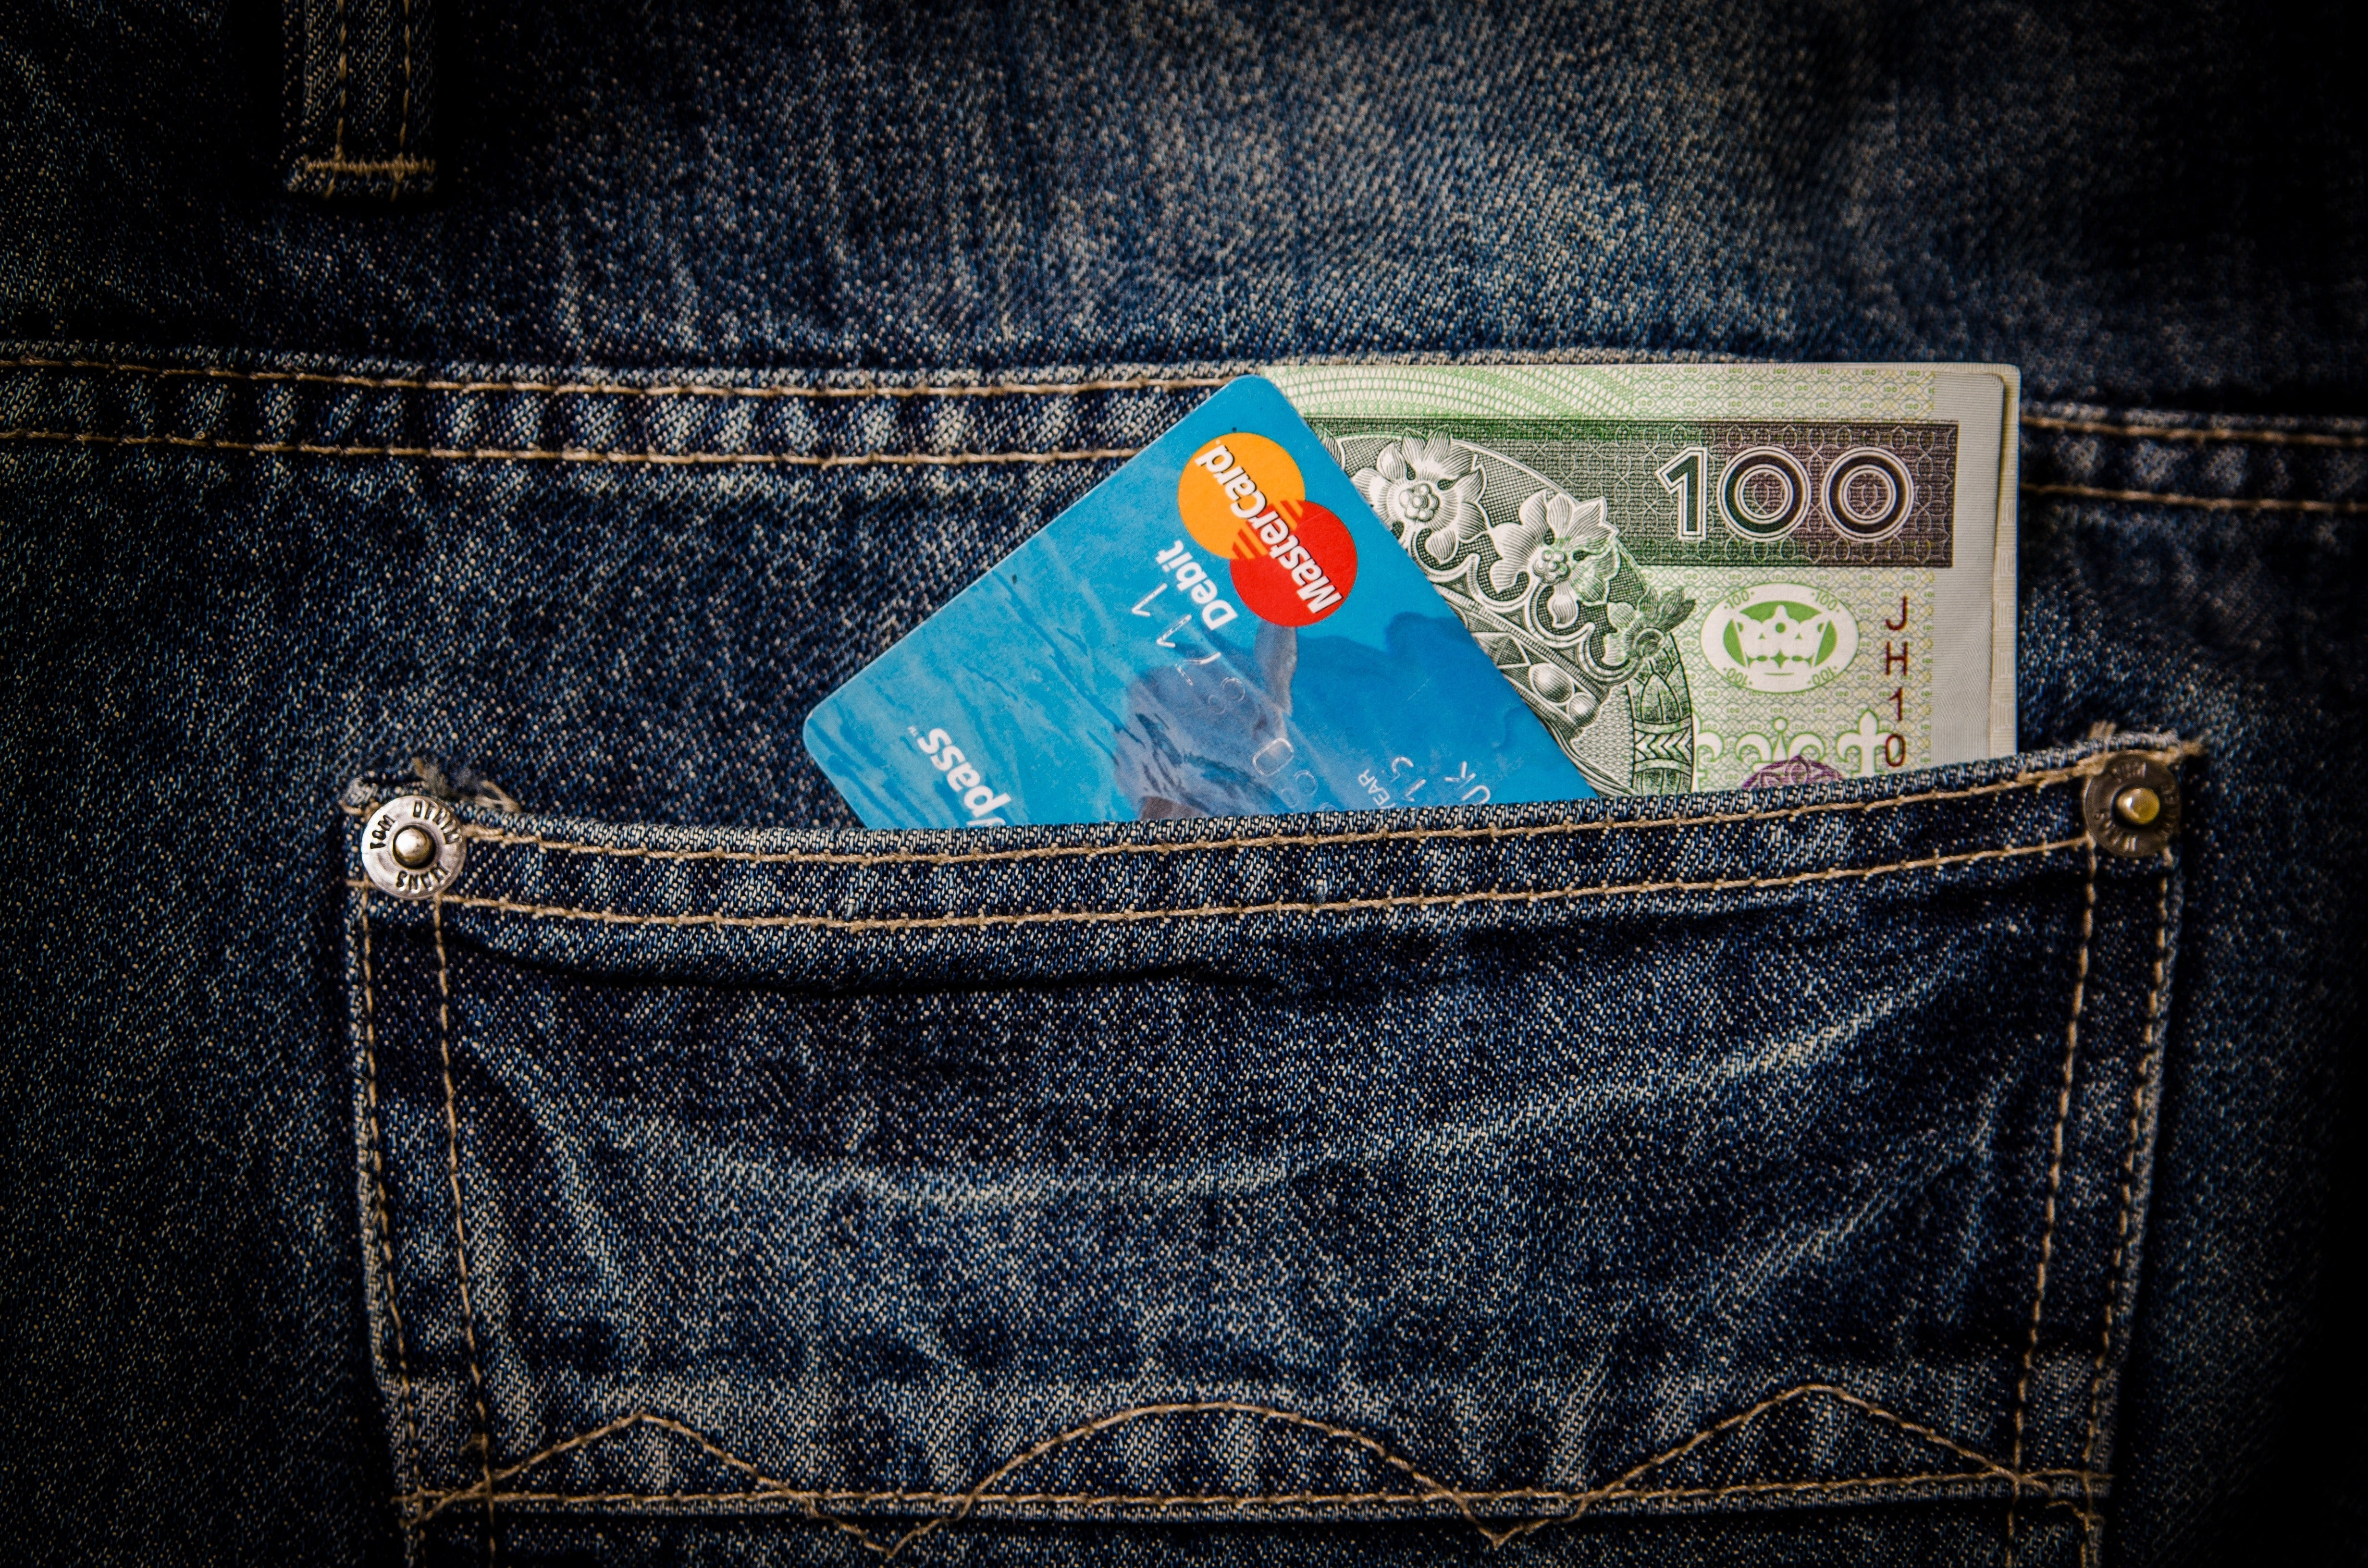 Travelling Abroad – Is Cash Better Or Credit Card?